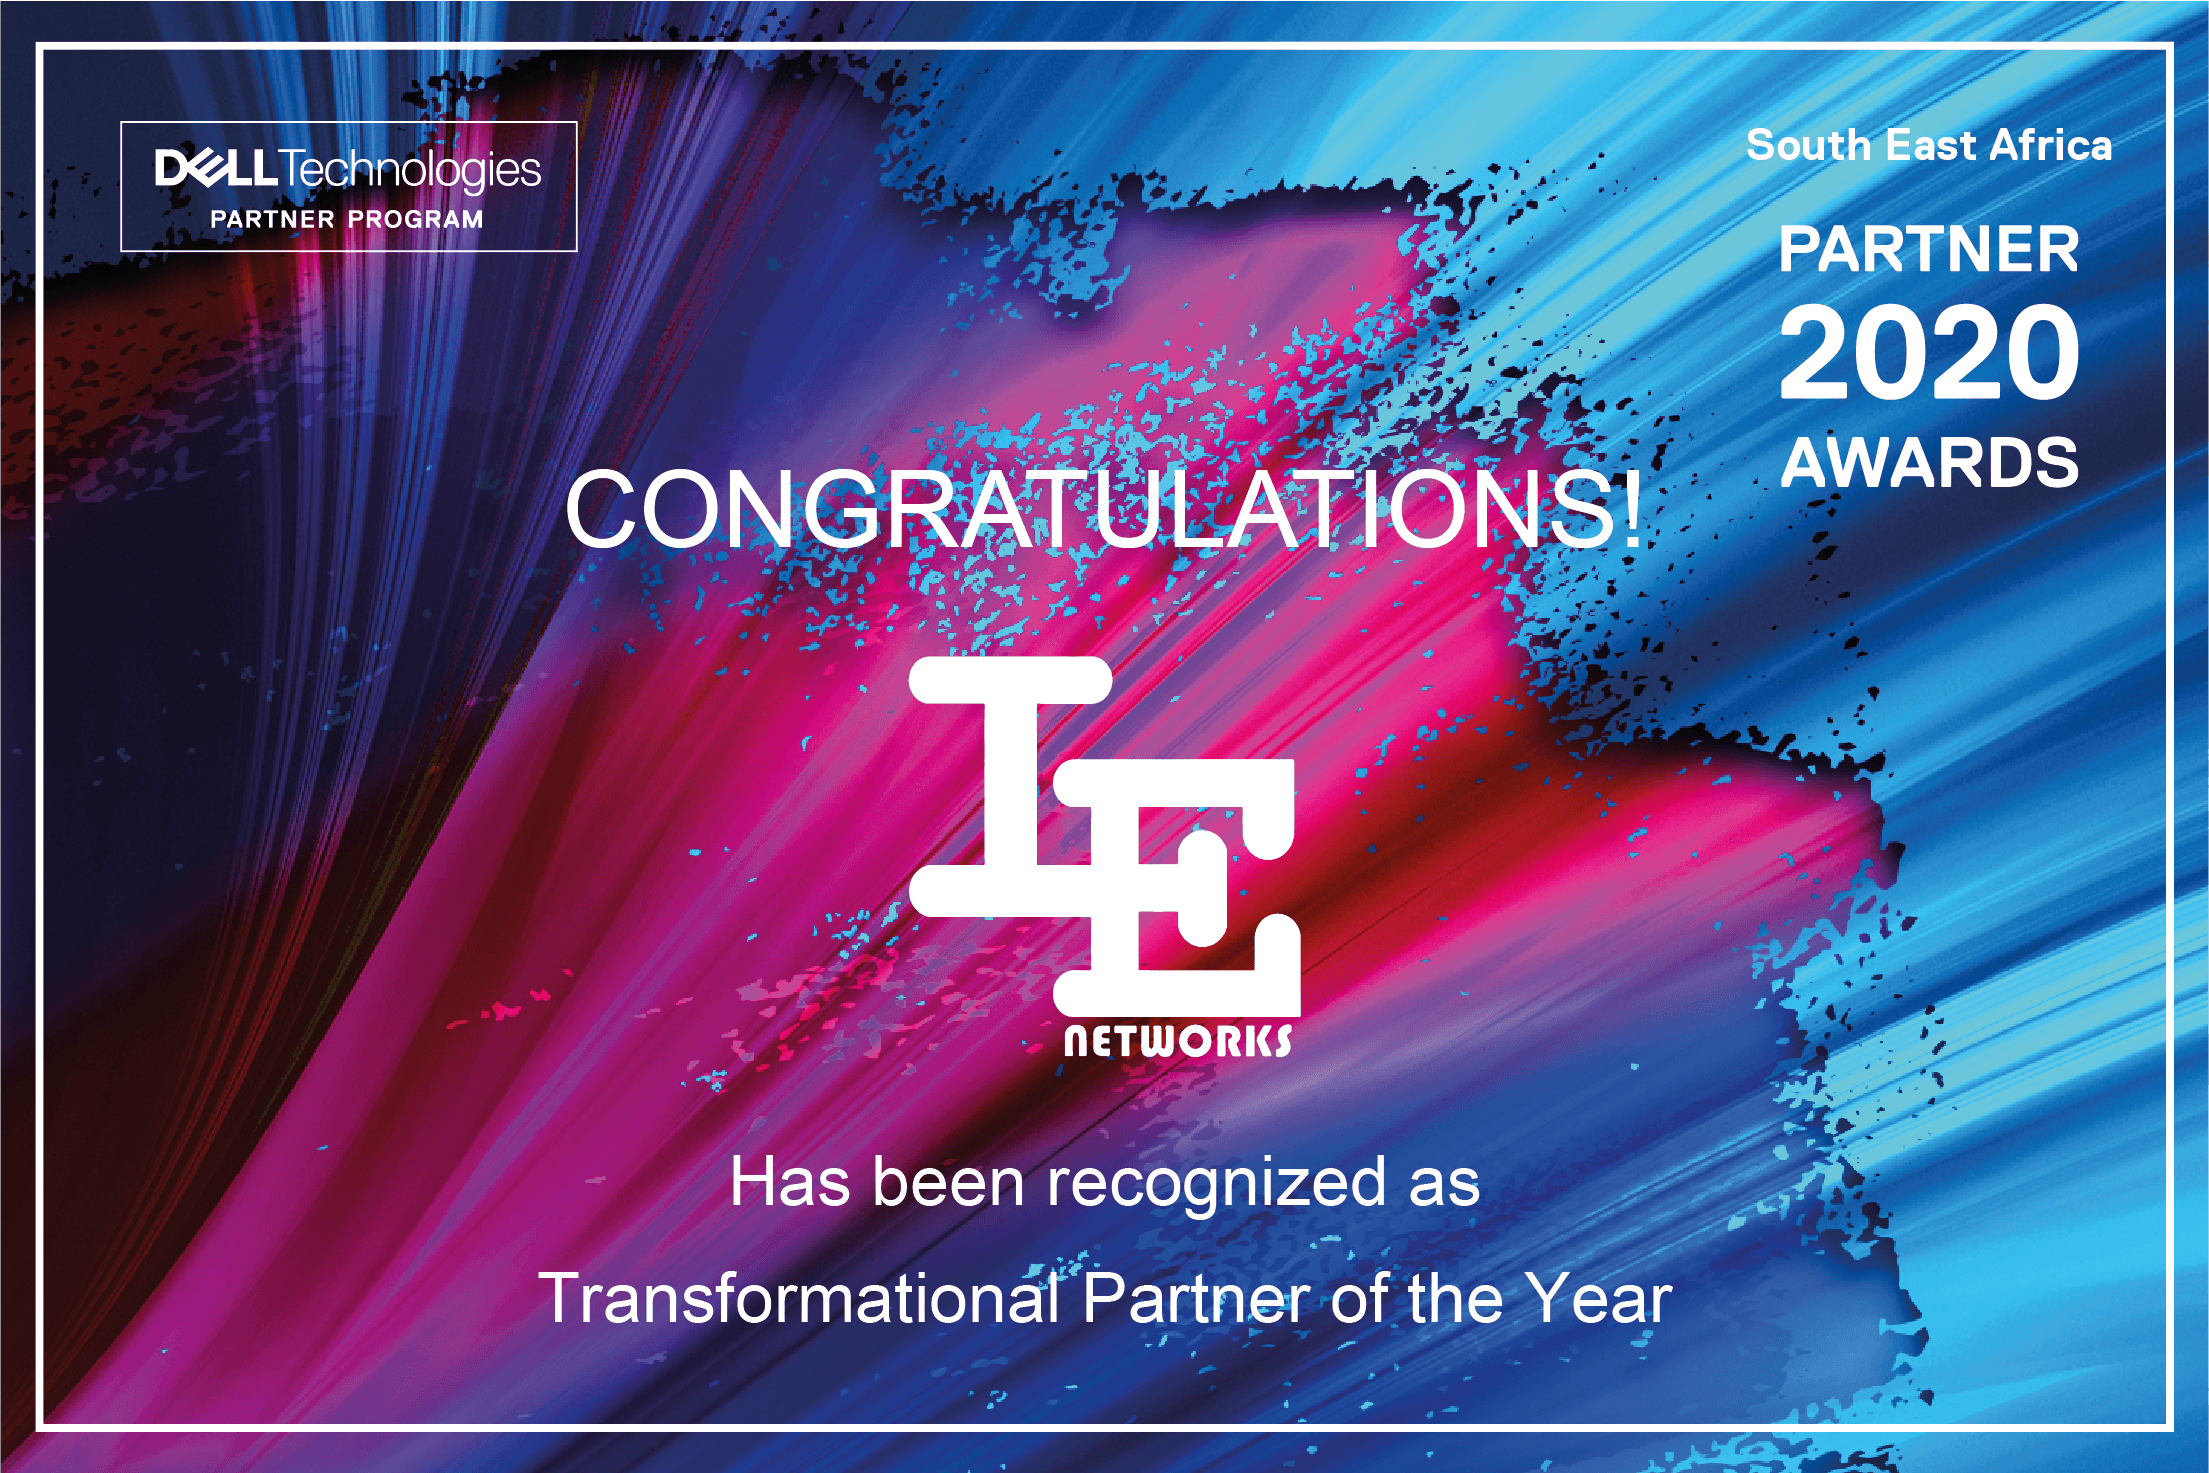 IE Networks Transformational Partner of the Year Award